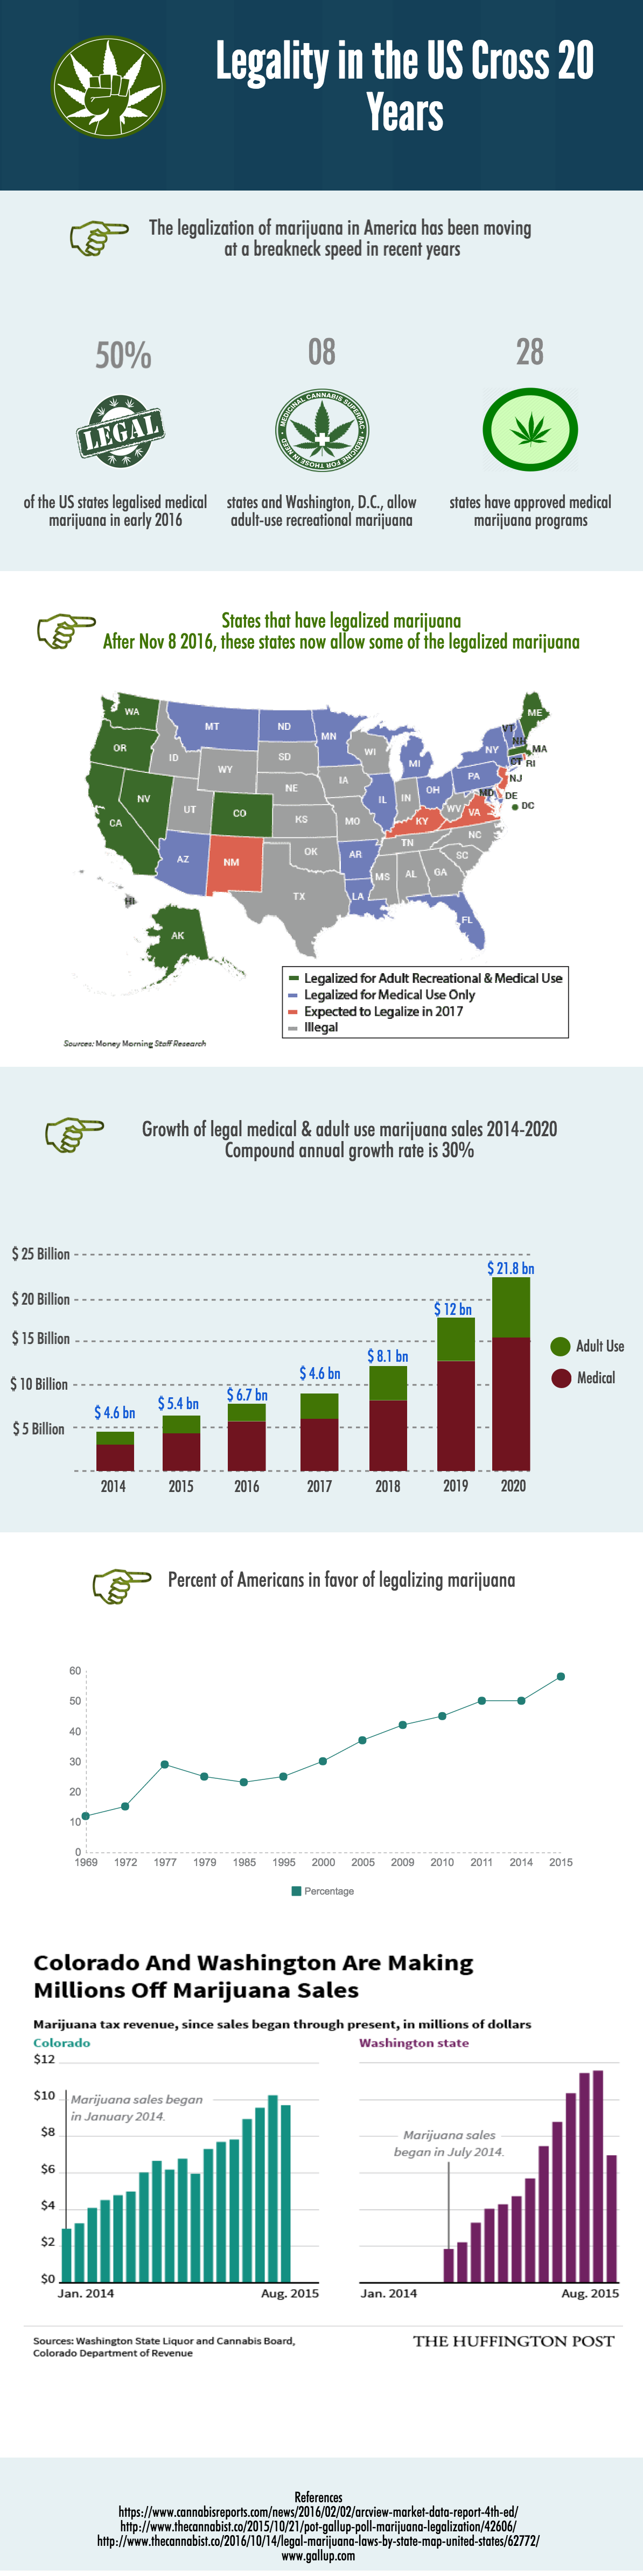 Legality of Cannabis in the USA Over 20 Years